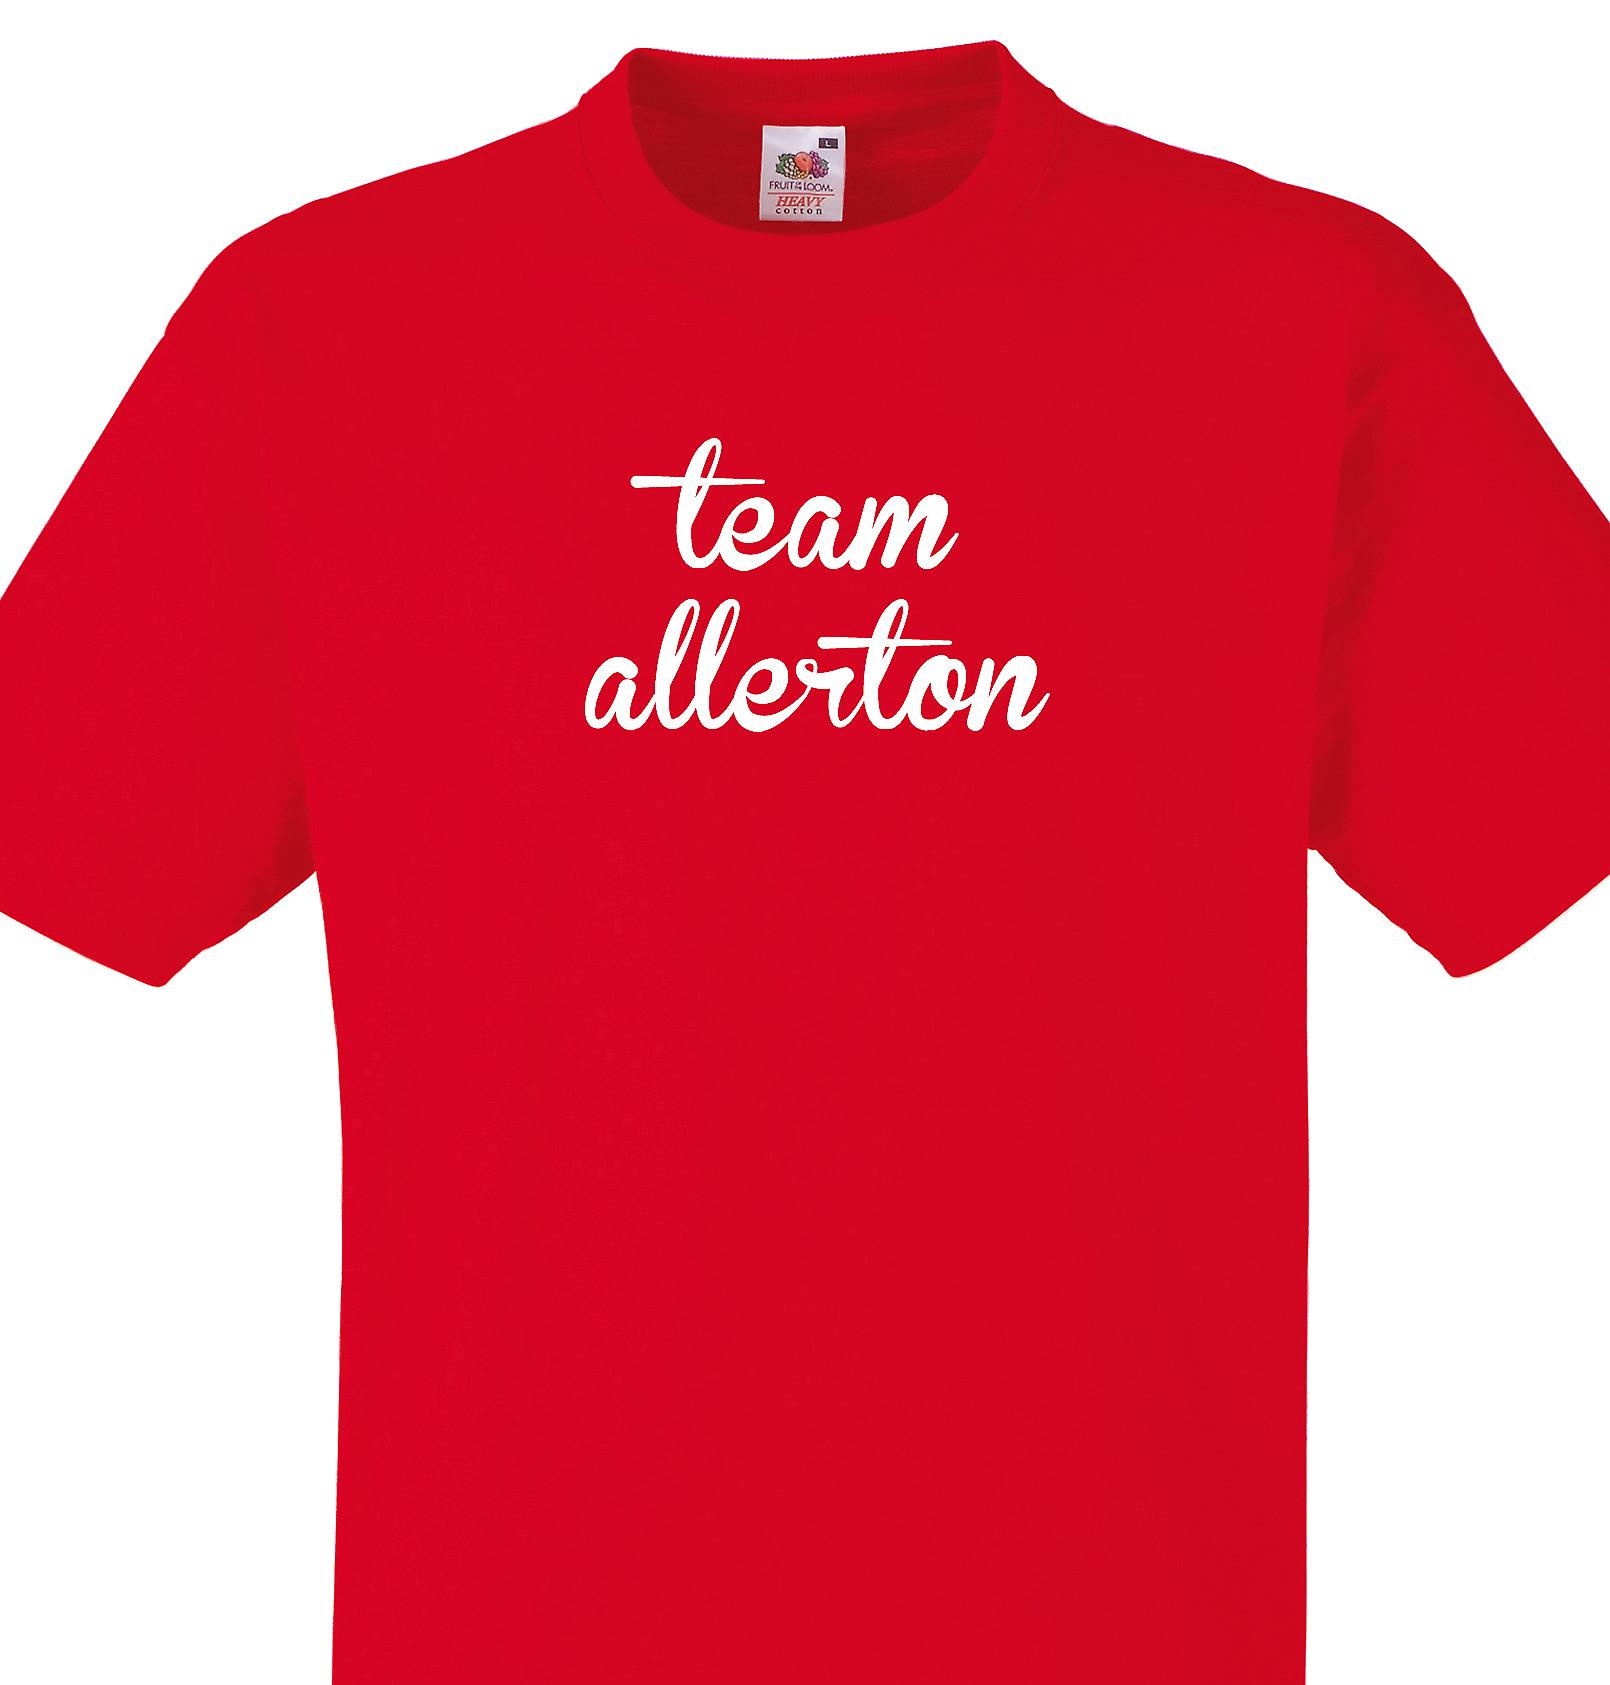 Team Allerton Red T shirt